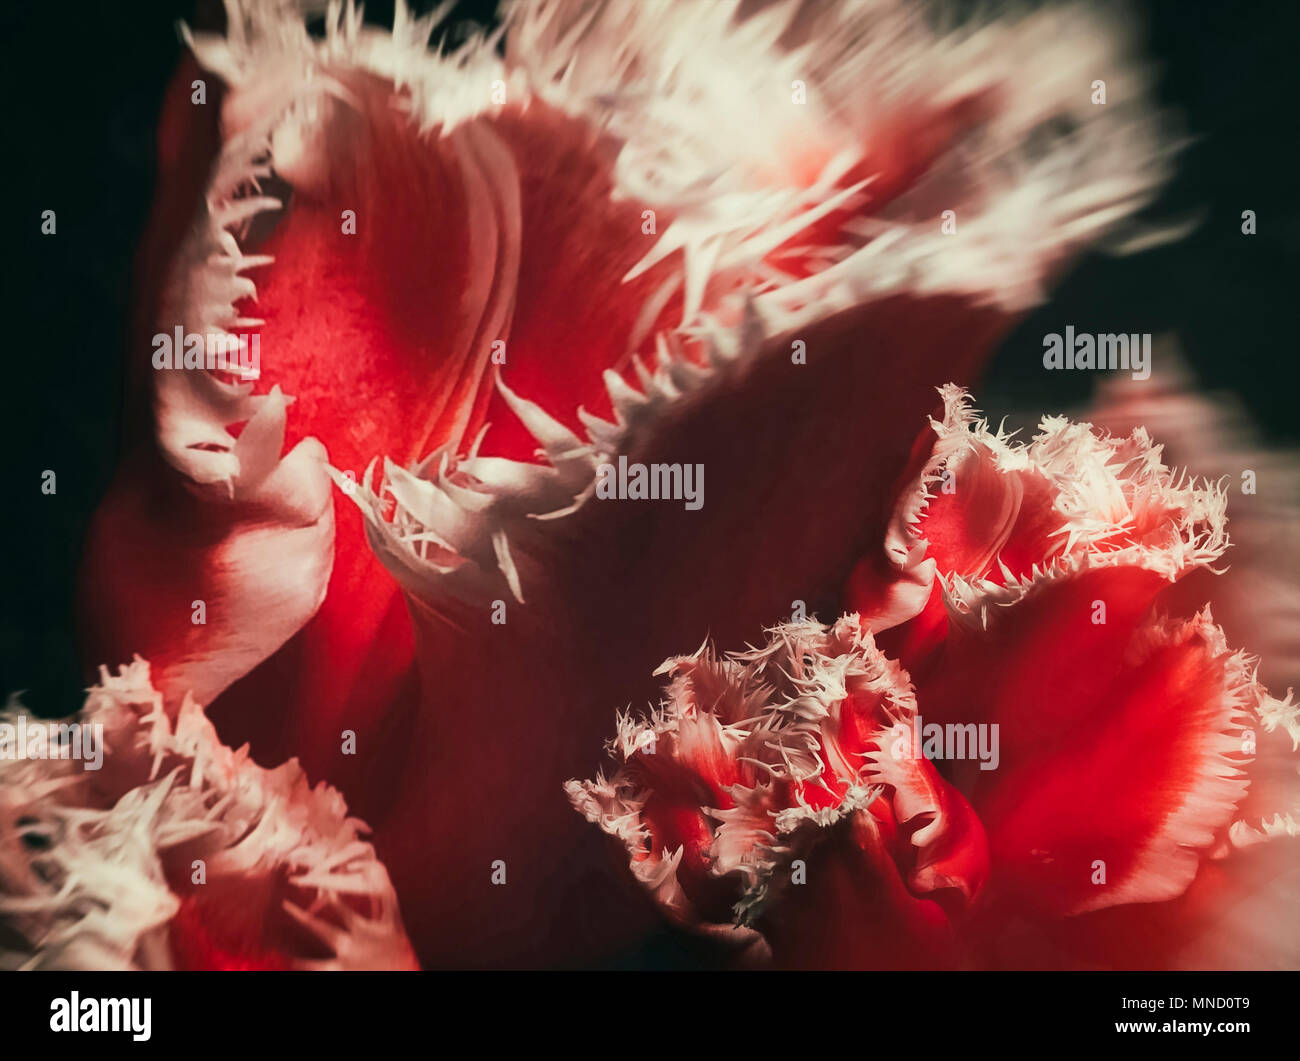 Red tulips with white edges on dark background. Abstract macro photo Stock Photo